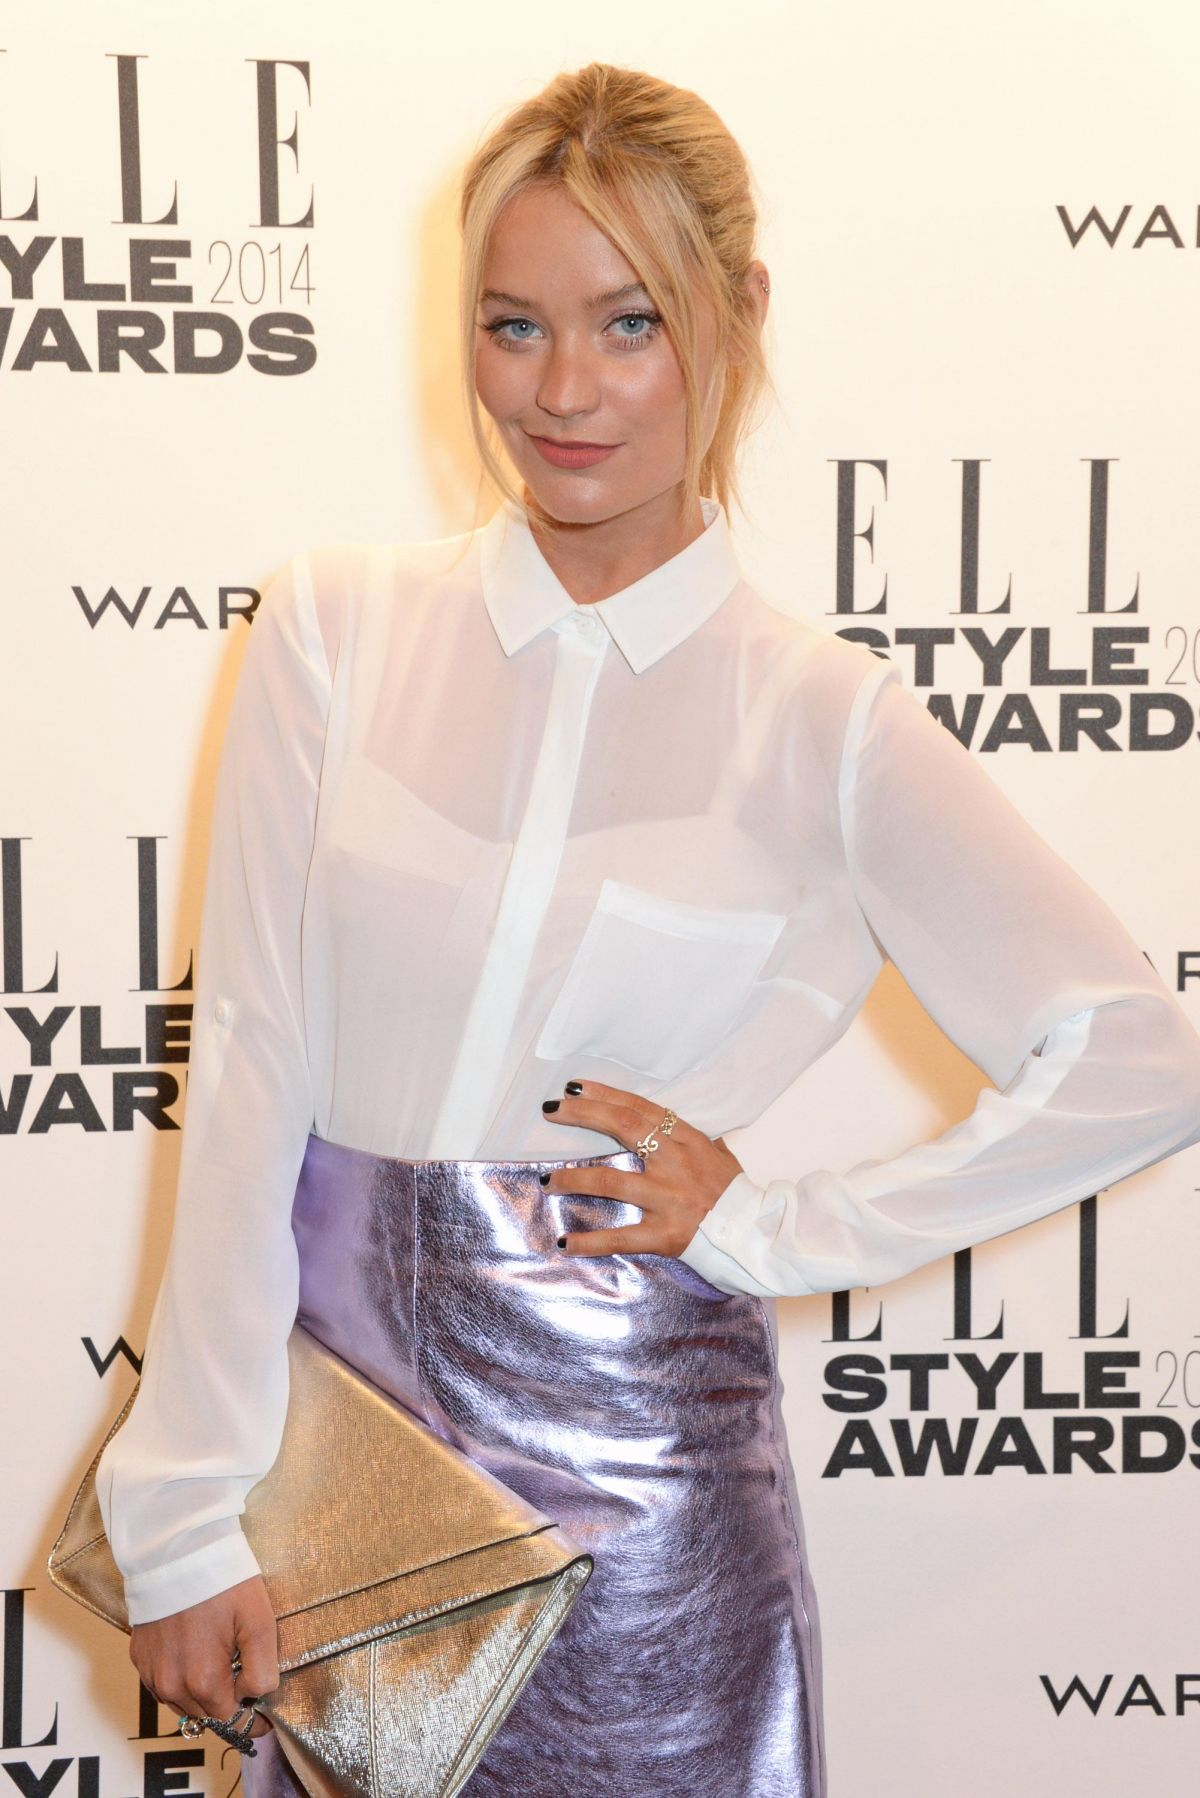 LAURA WHITMORE at 2014 Elle Style Awards in London